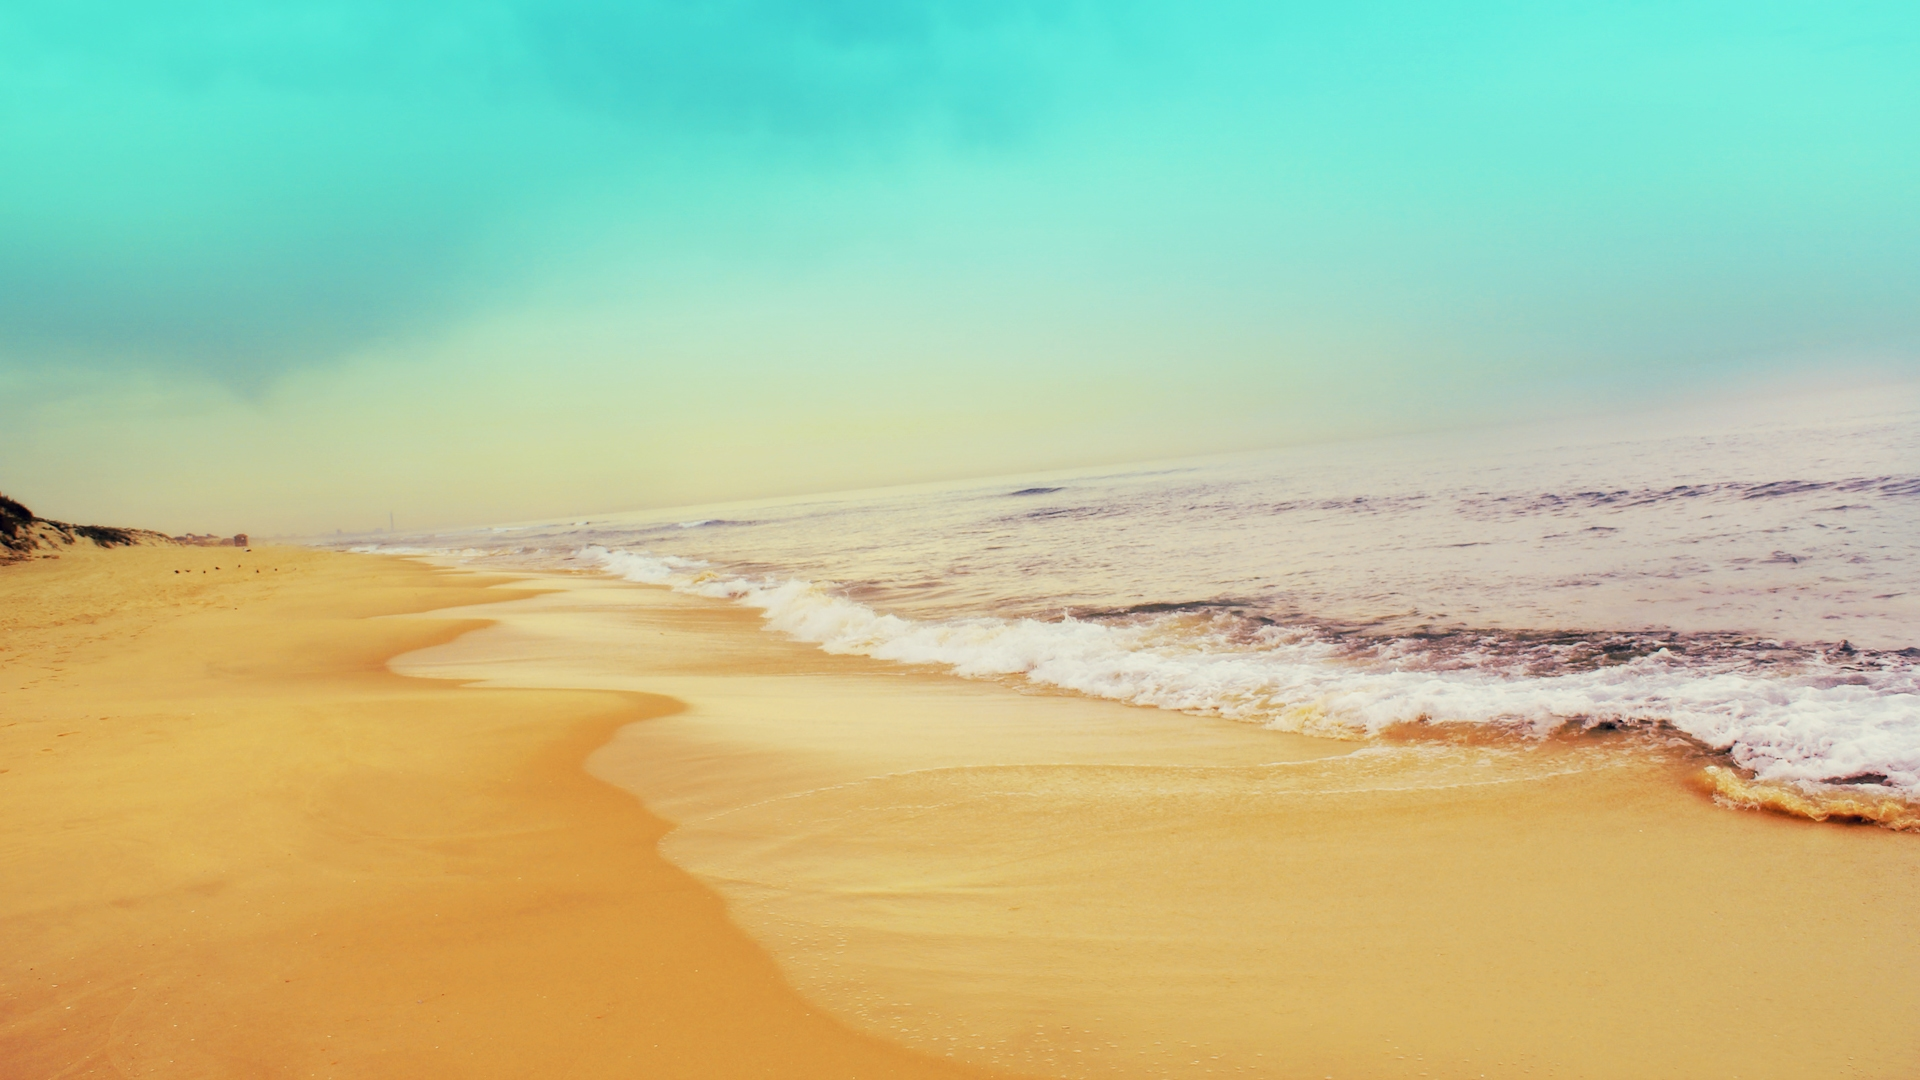 Hd 1920x1080 Sea Water And Beach Desktop Wallpapers Backgrounds 1920x1080